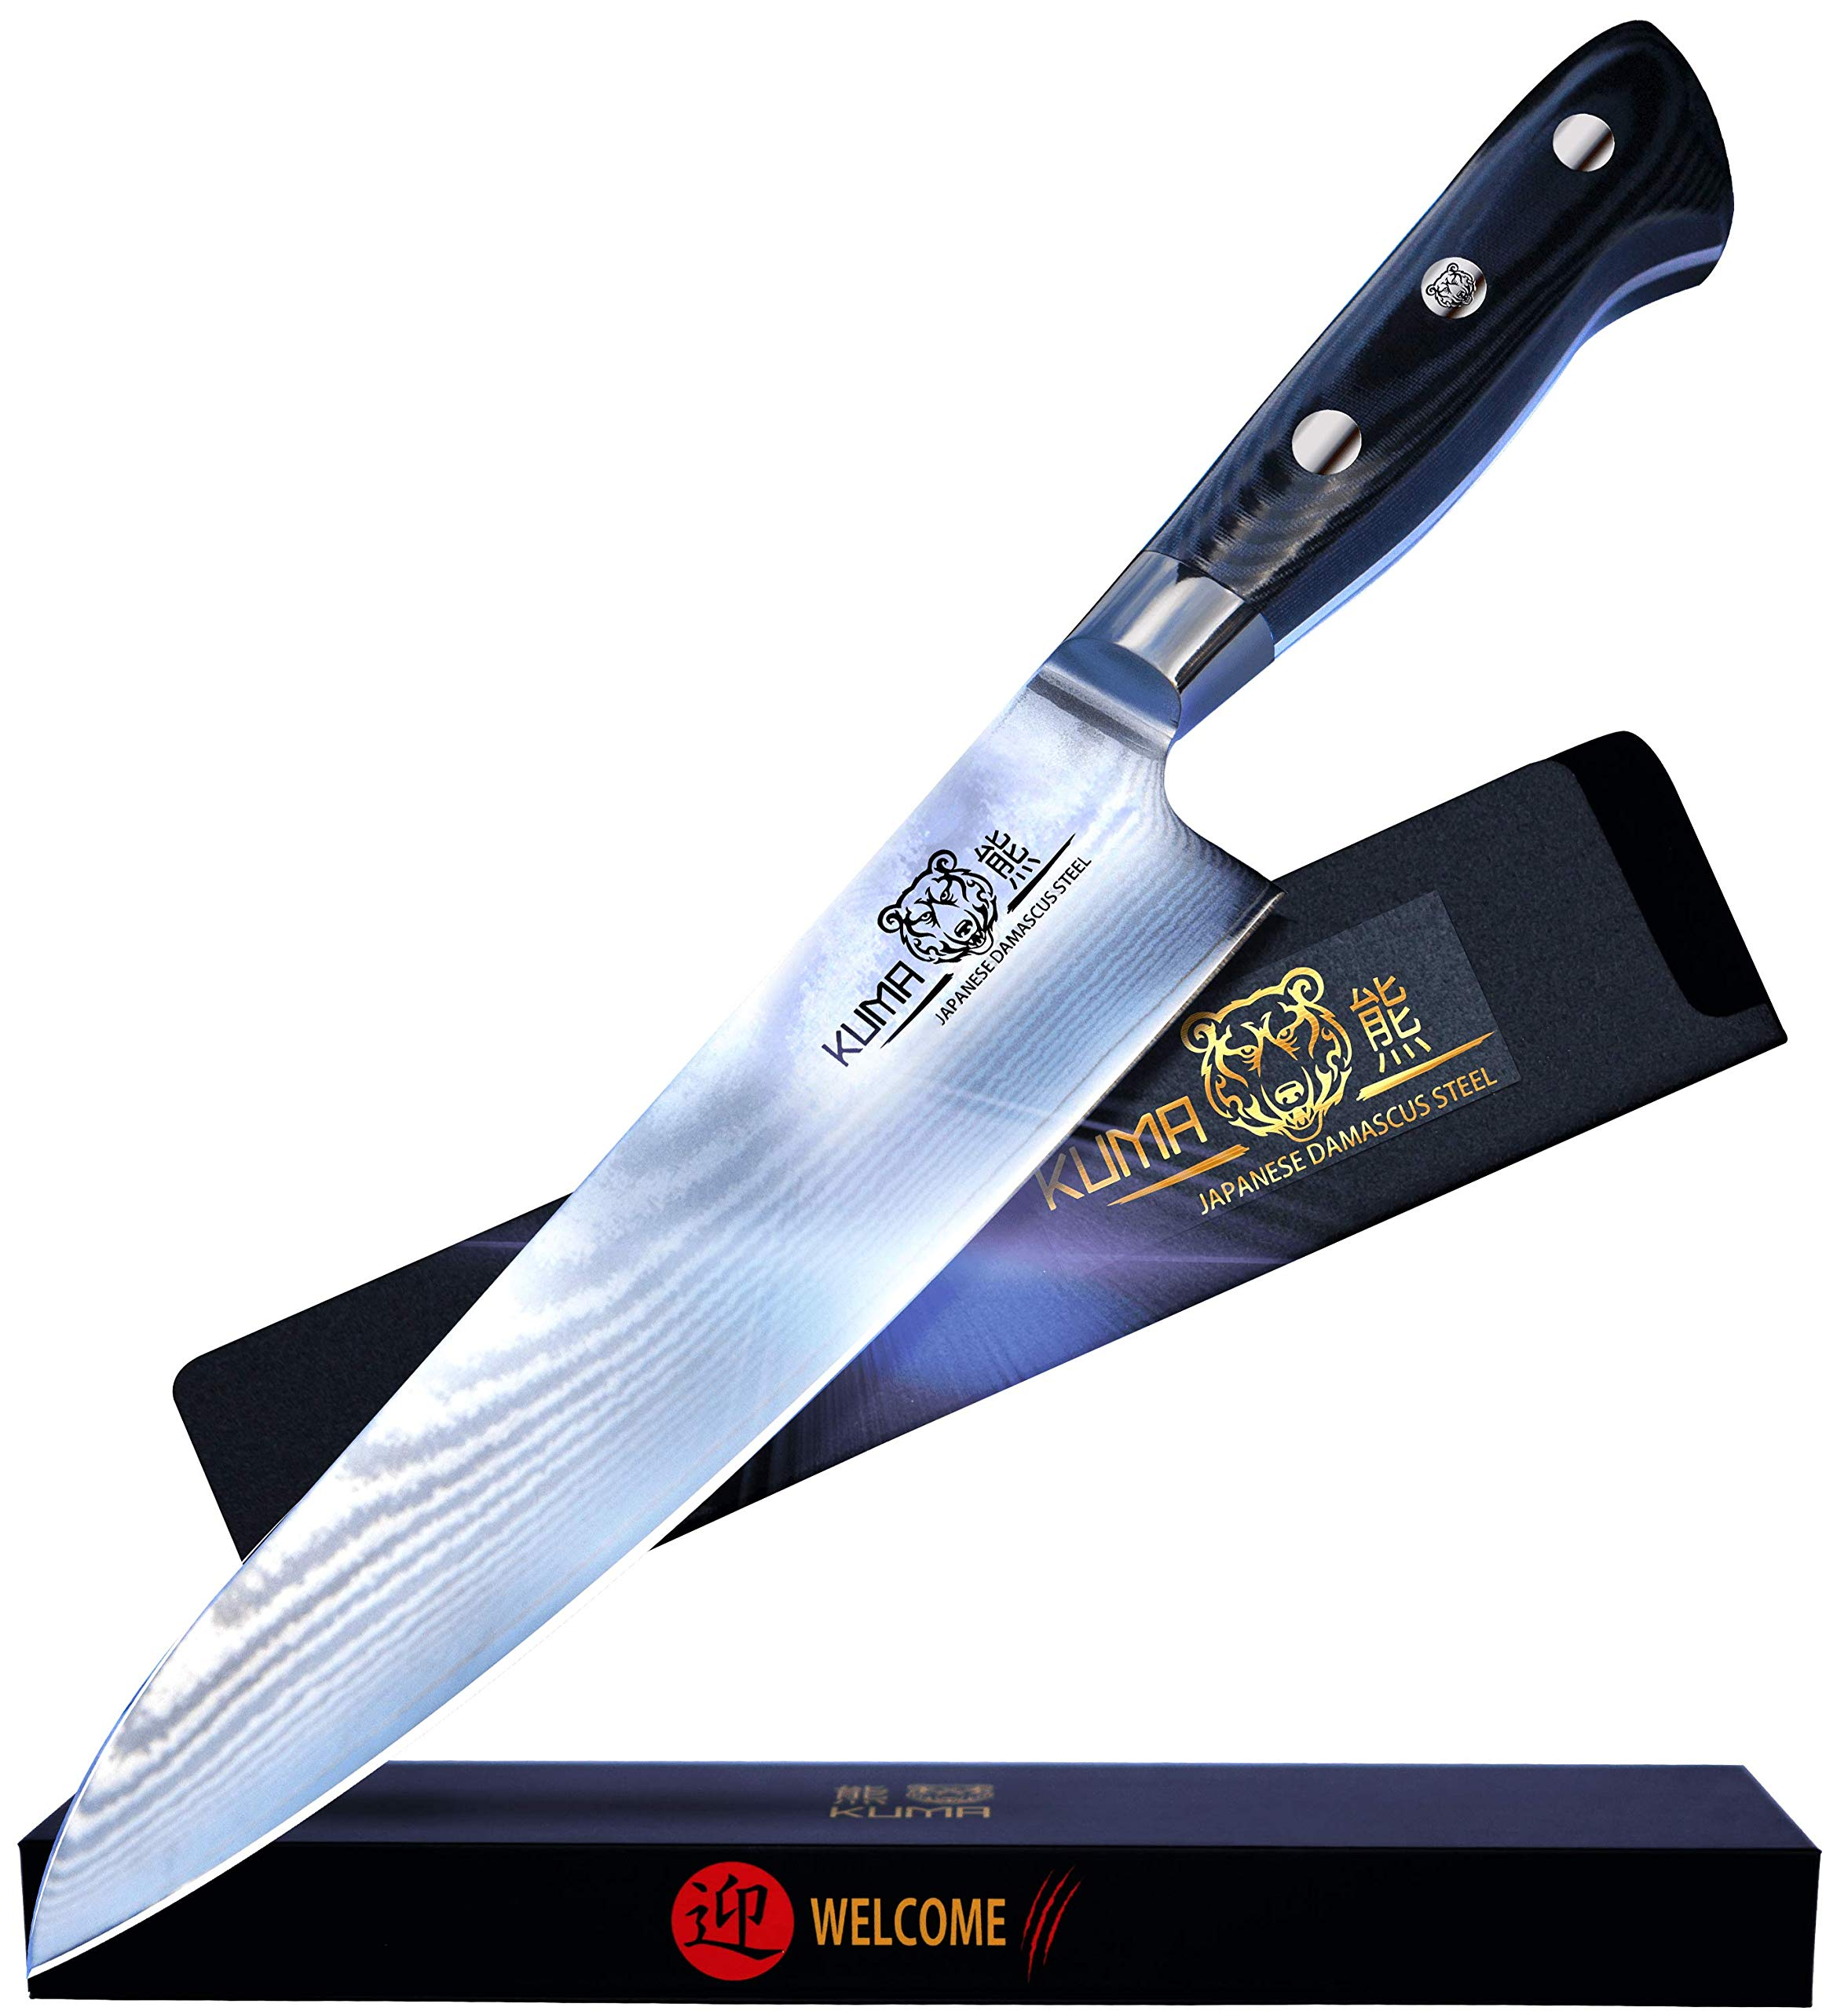 KUMA Professional Damascus Steel Knife - 8 inch Chef Knife with Hardened Japanese Carbon Steel - Stain & Corrosion Resistant Blade - Balanced Ergonomic Handle & Sheath - Safe, Easy Meal Prep